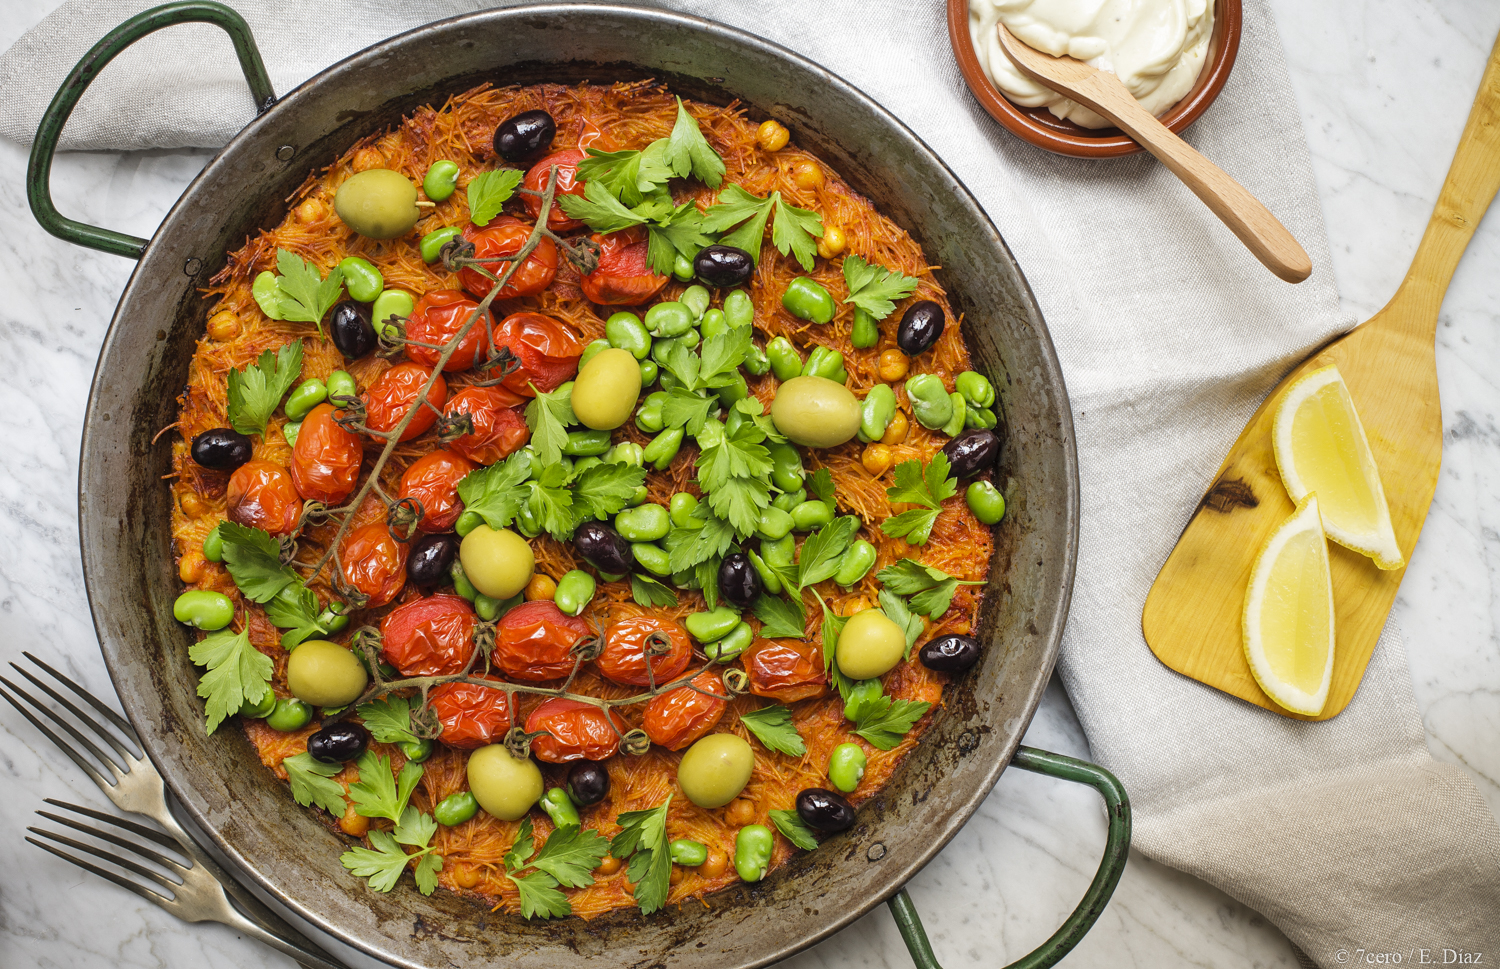 A lazy one pot meal you can eat straight from the pan, I mean, what more could you ask for?